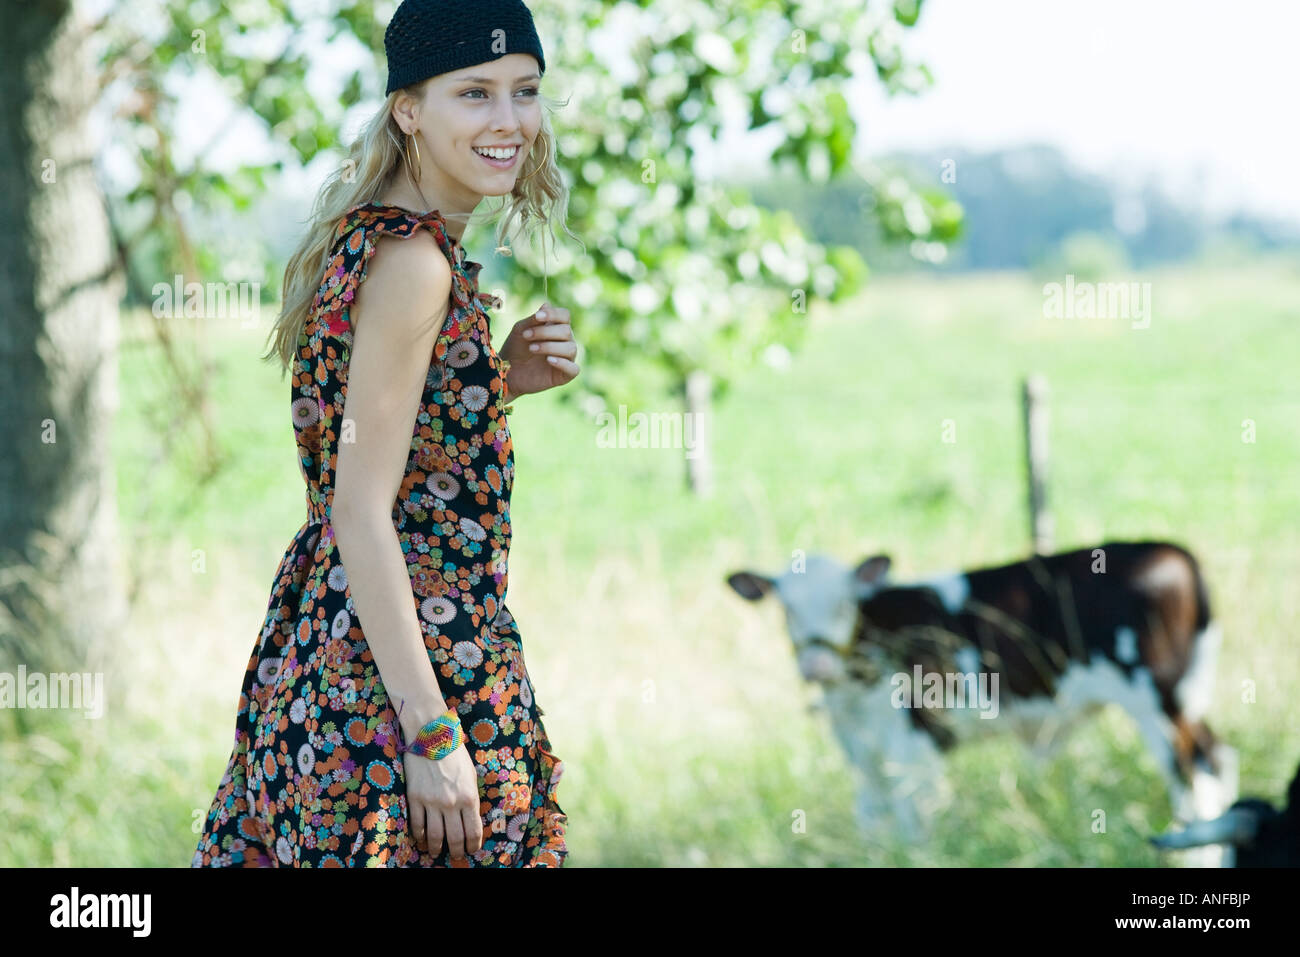 Young woman walking toward cow, smiling, looking away - Stock Image